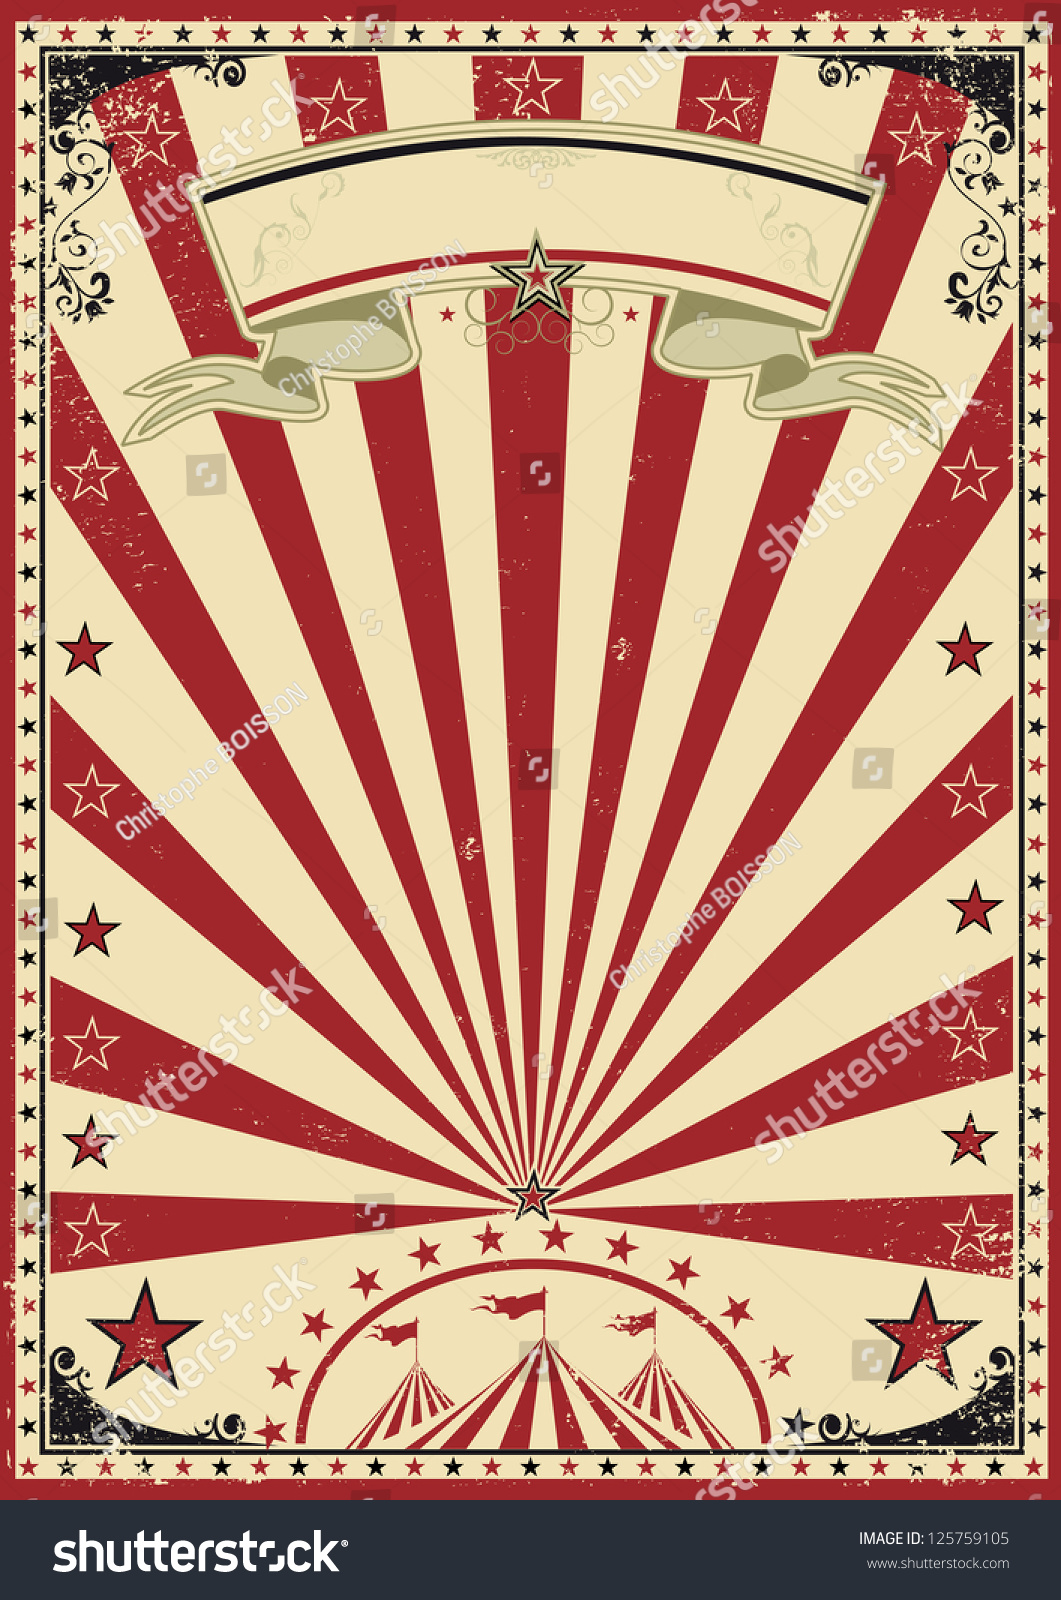 Circus Red Vintage Circus Vintage Poster Stock Vector